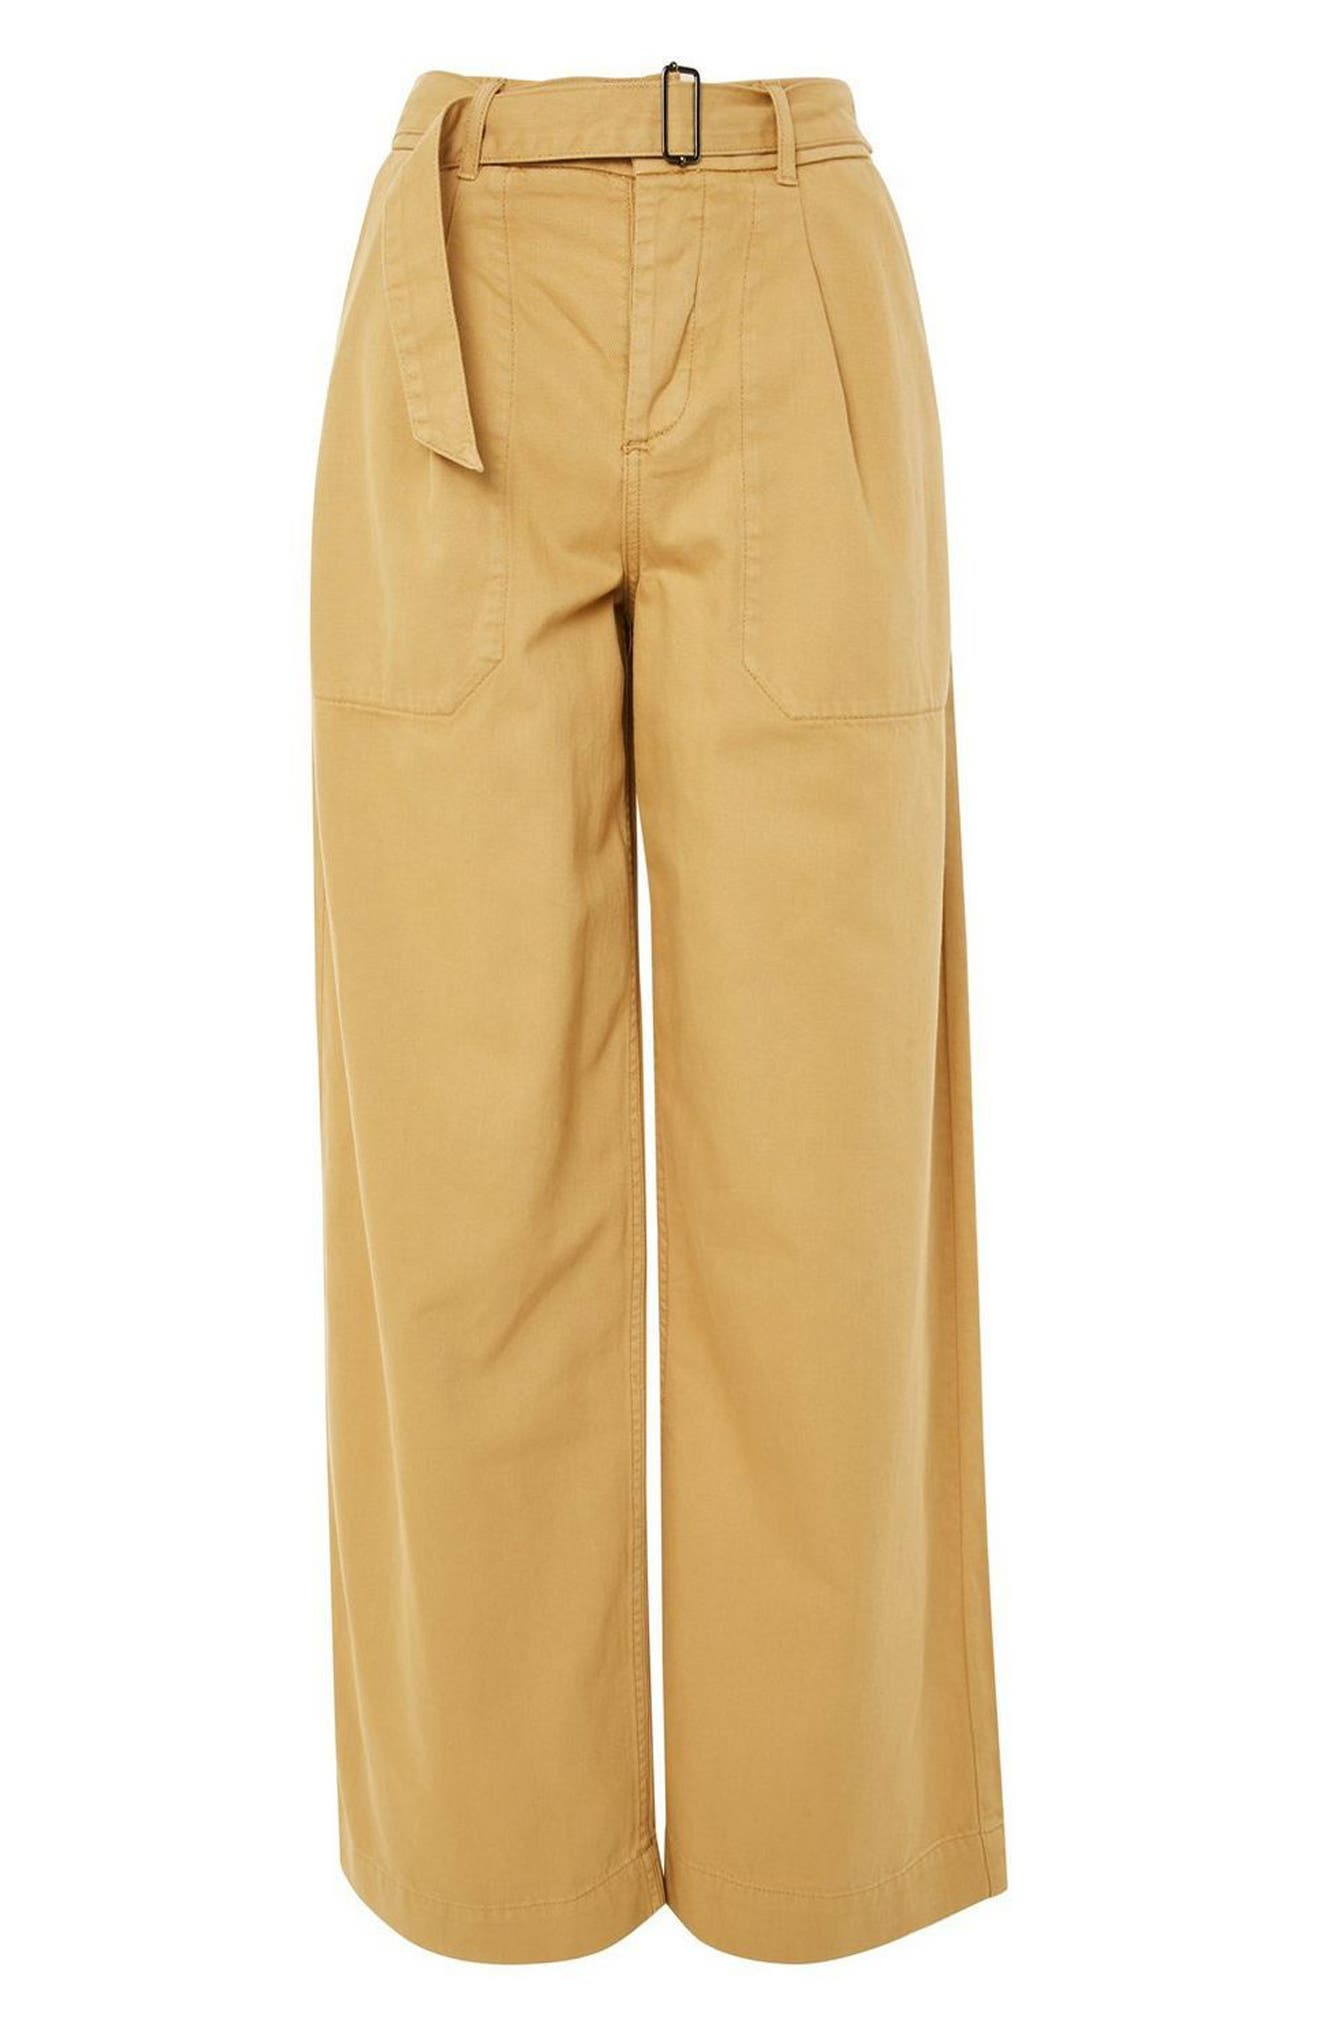 Wonder Wide Chino Trousers,                             Alternate thumbnail 4, color,                             Stone